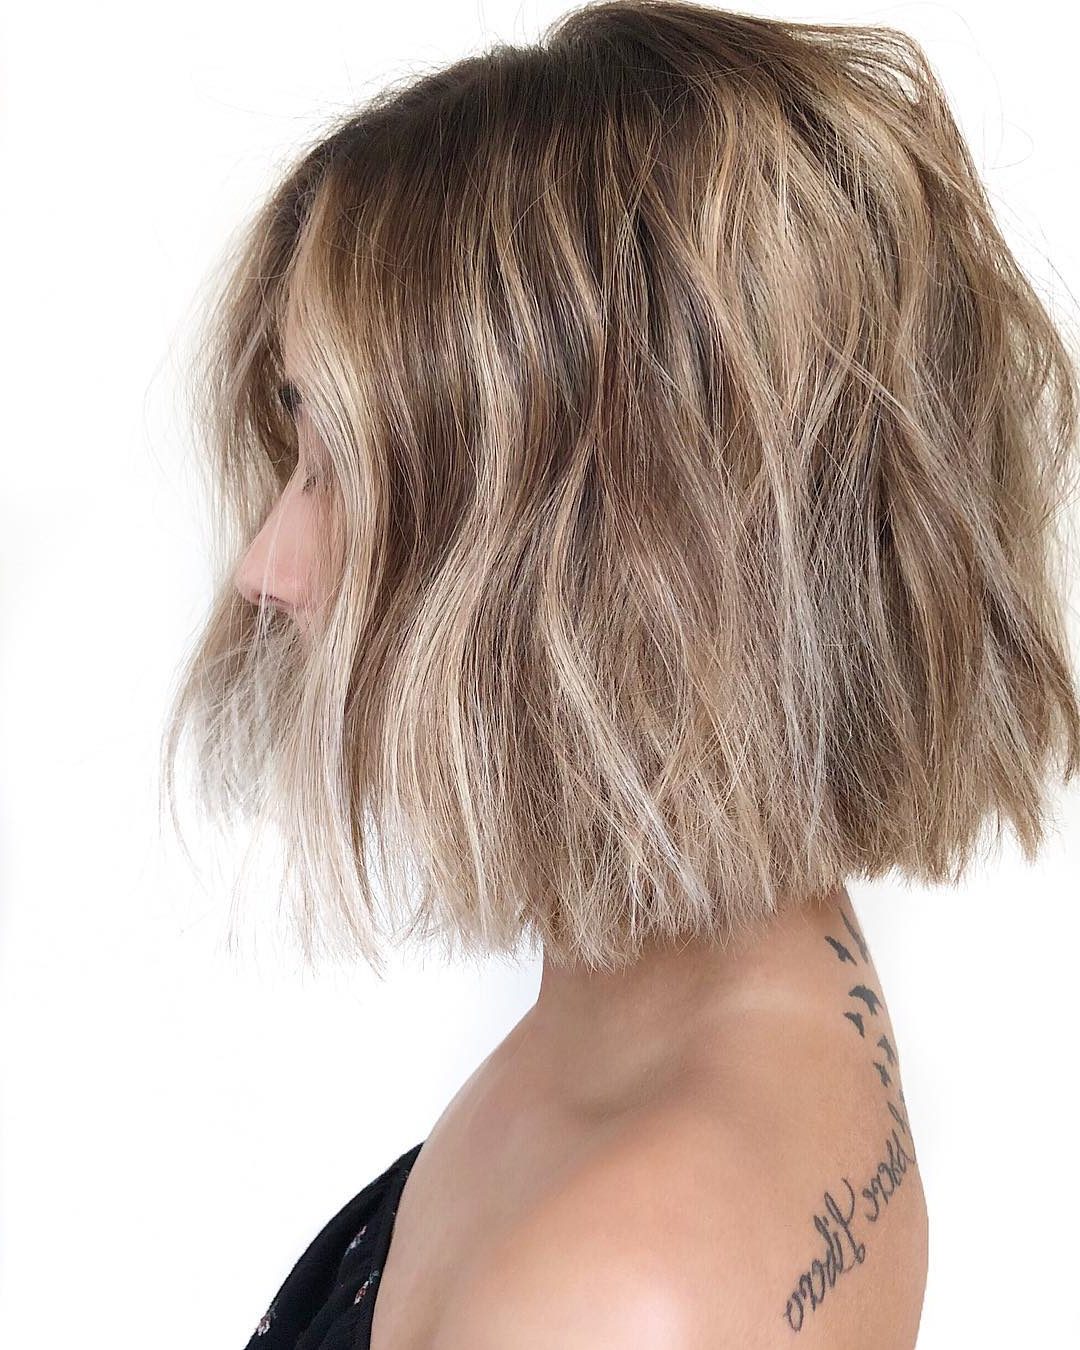 10 Trendy Messy Bob Hairstyles And Haircuts, 2019 Female Short Hair In Most Popular Cute Bangs And Messy Texture Hairstyles (Gallery 5 of 20)